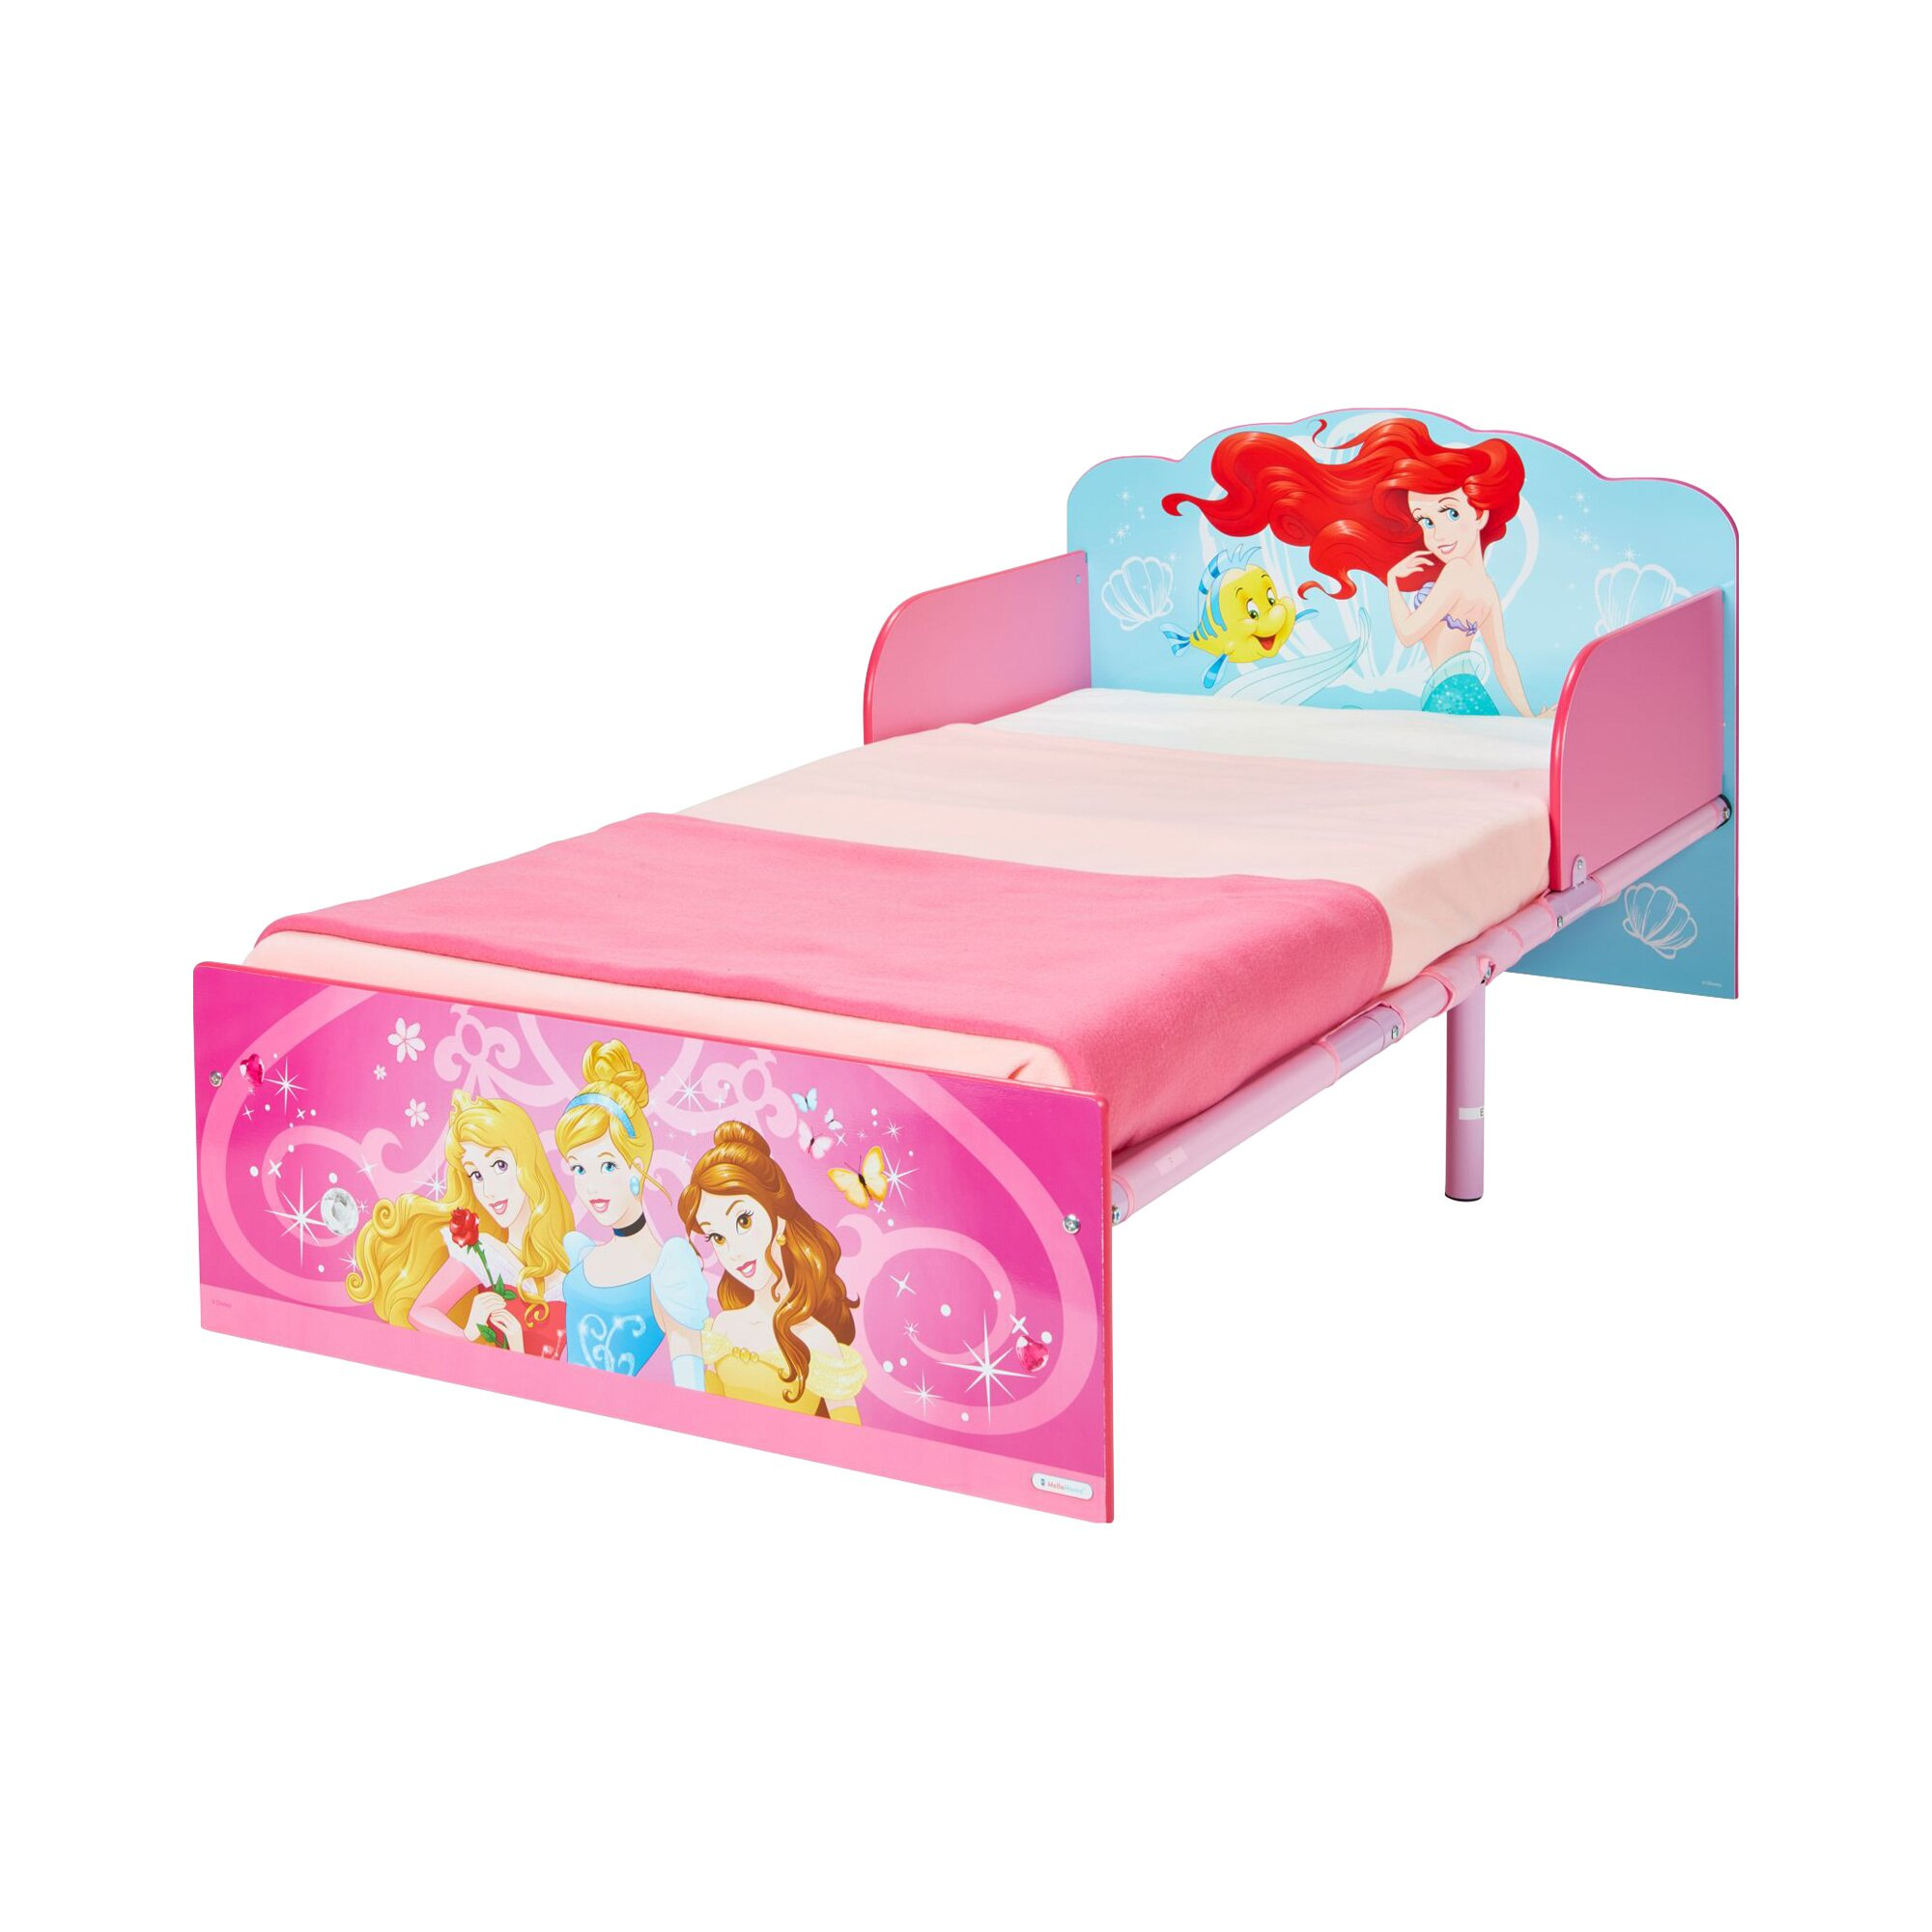 Disney Princess Kinderbett Princess 70 x 140 cm